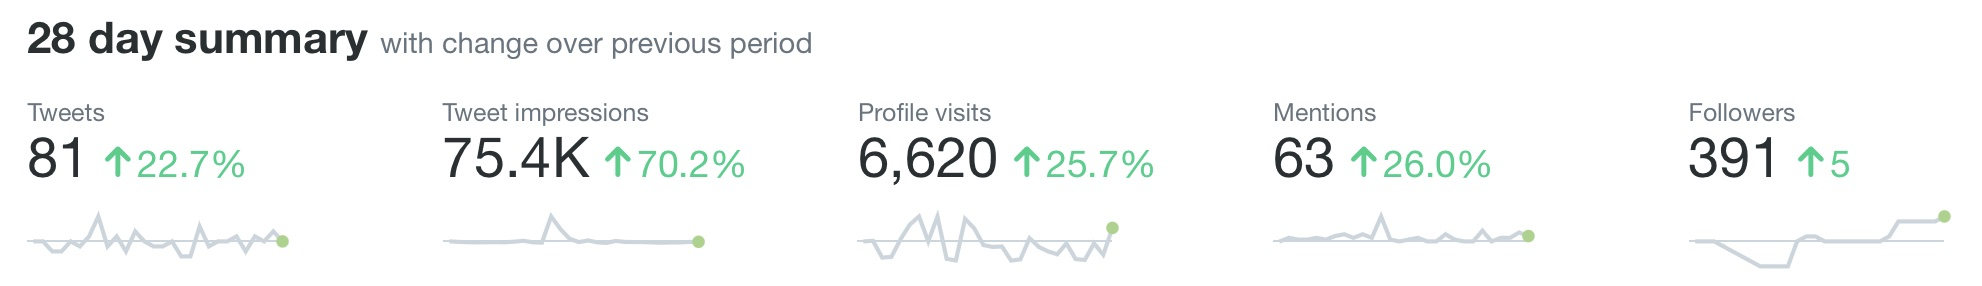 A screenshot of my Twitter analytics for June 2021. It shows 81 tweets, 75,400 tweet impressions, 6,620 profile visits, 63 mentions, and 391 followers (5 more than last month).